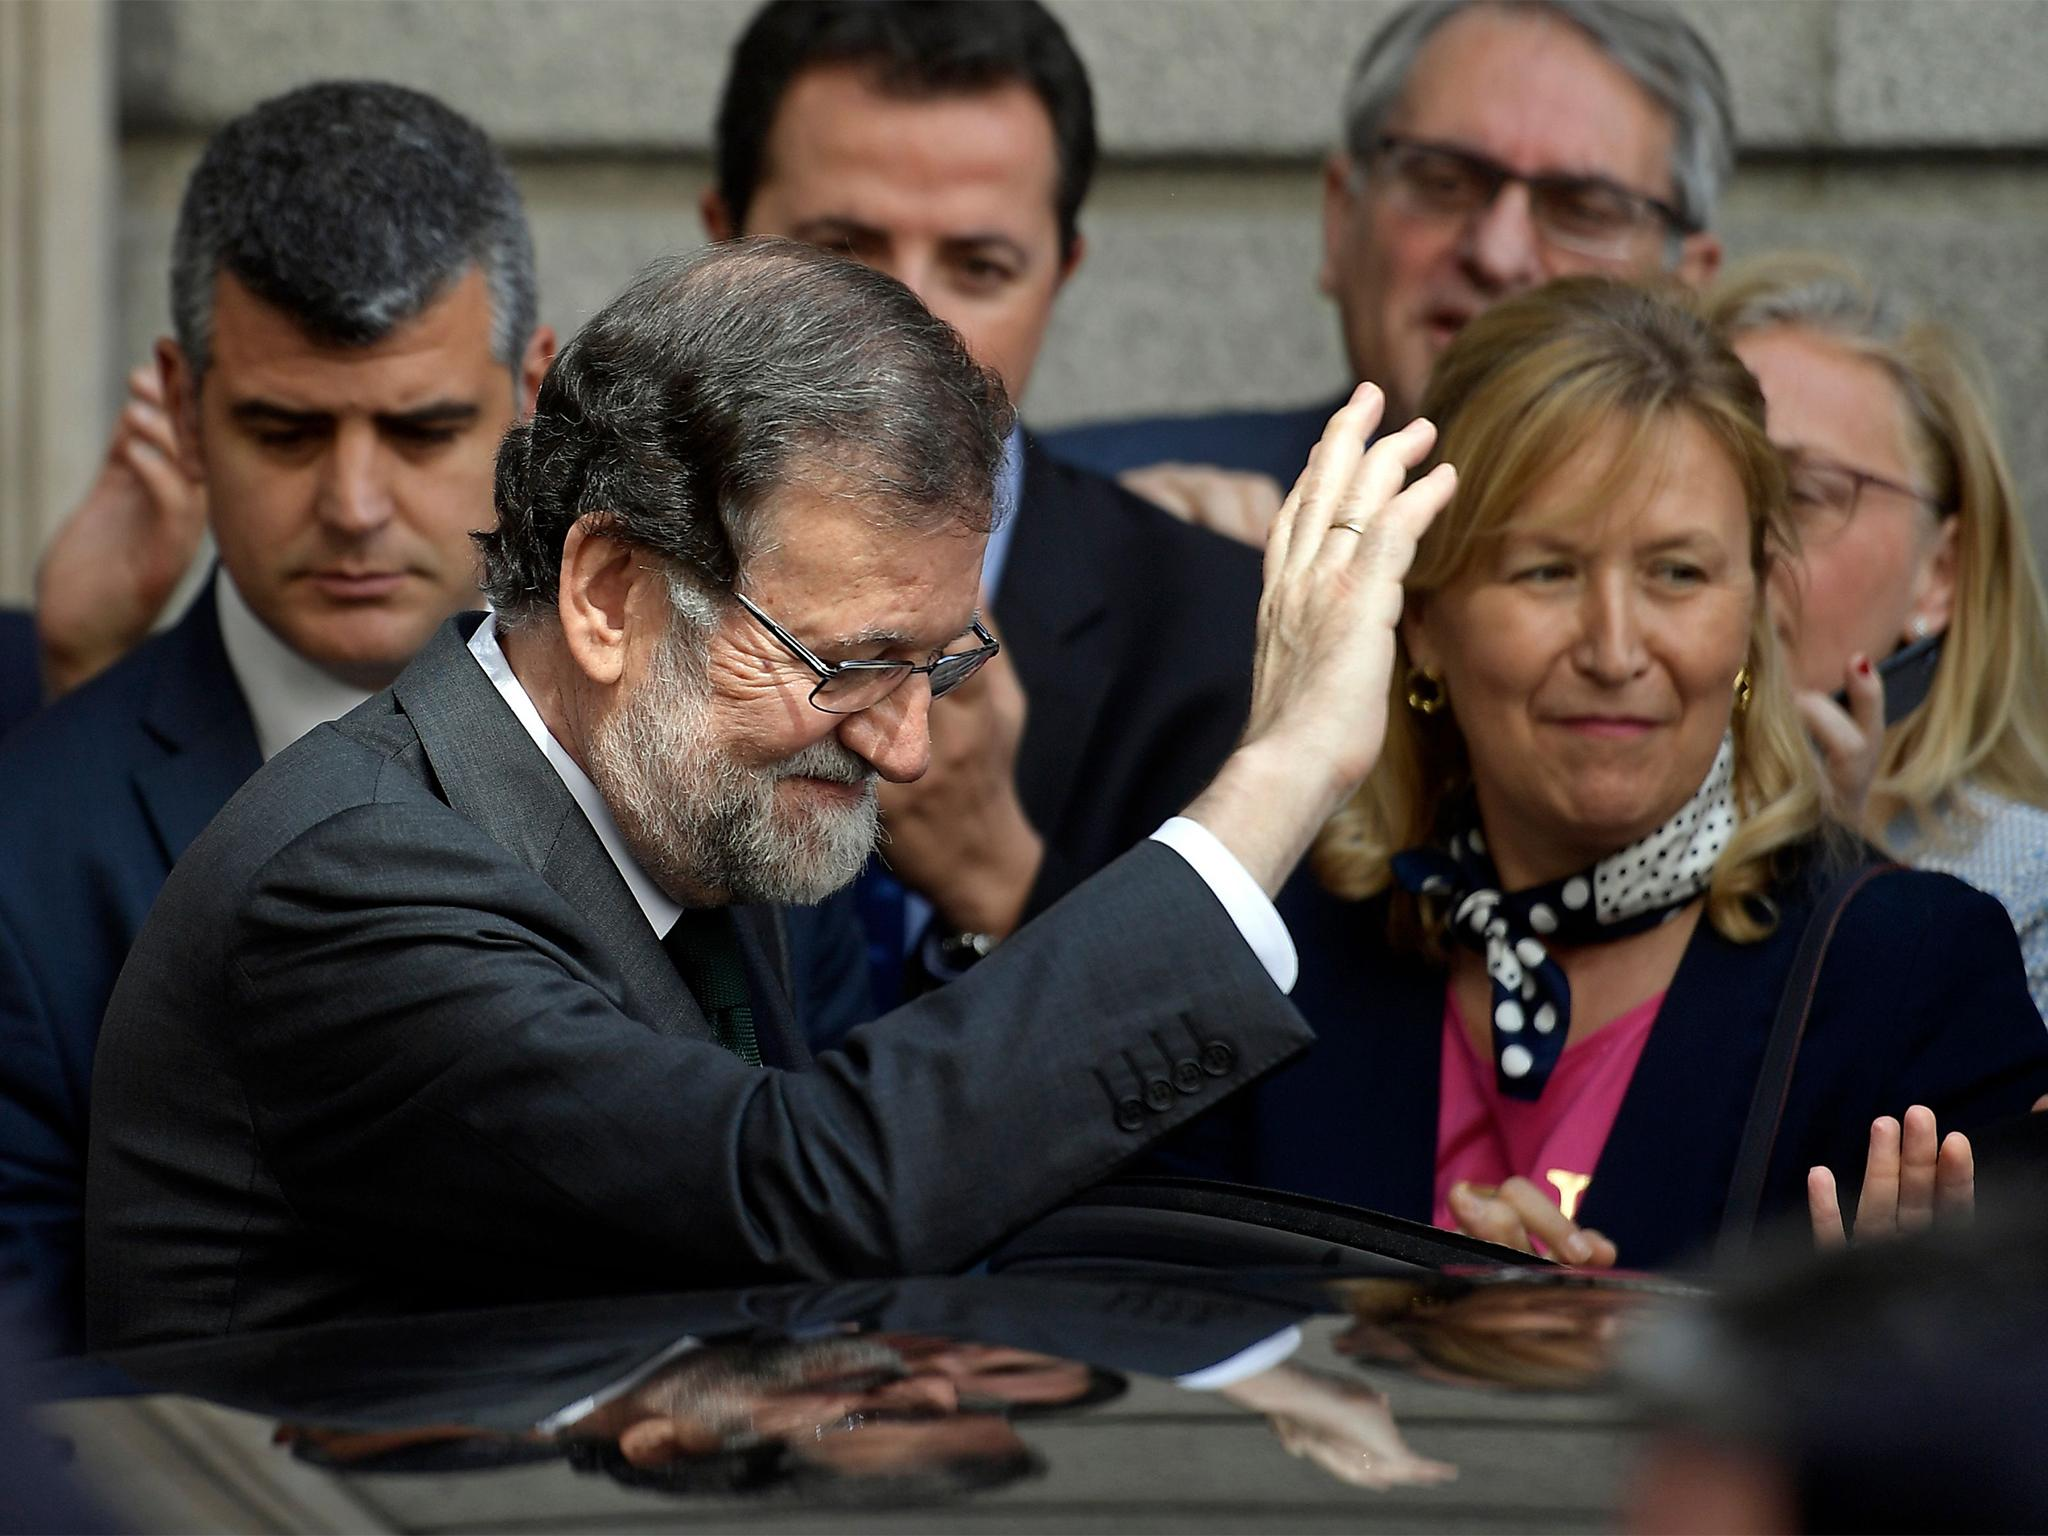 Rajoy out: Spain's government collapses after no-confidence vote